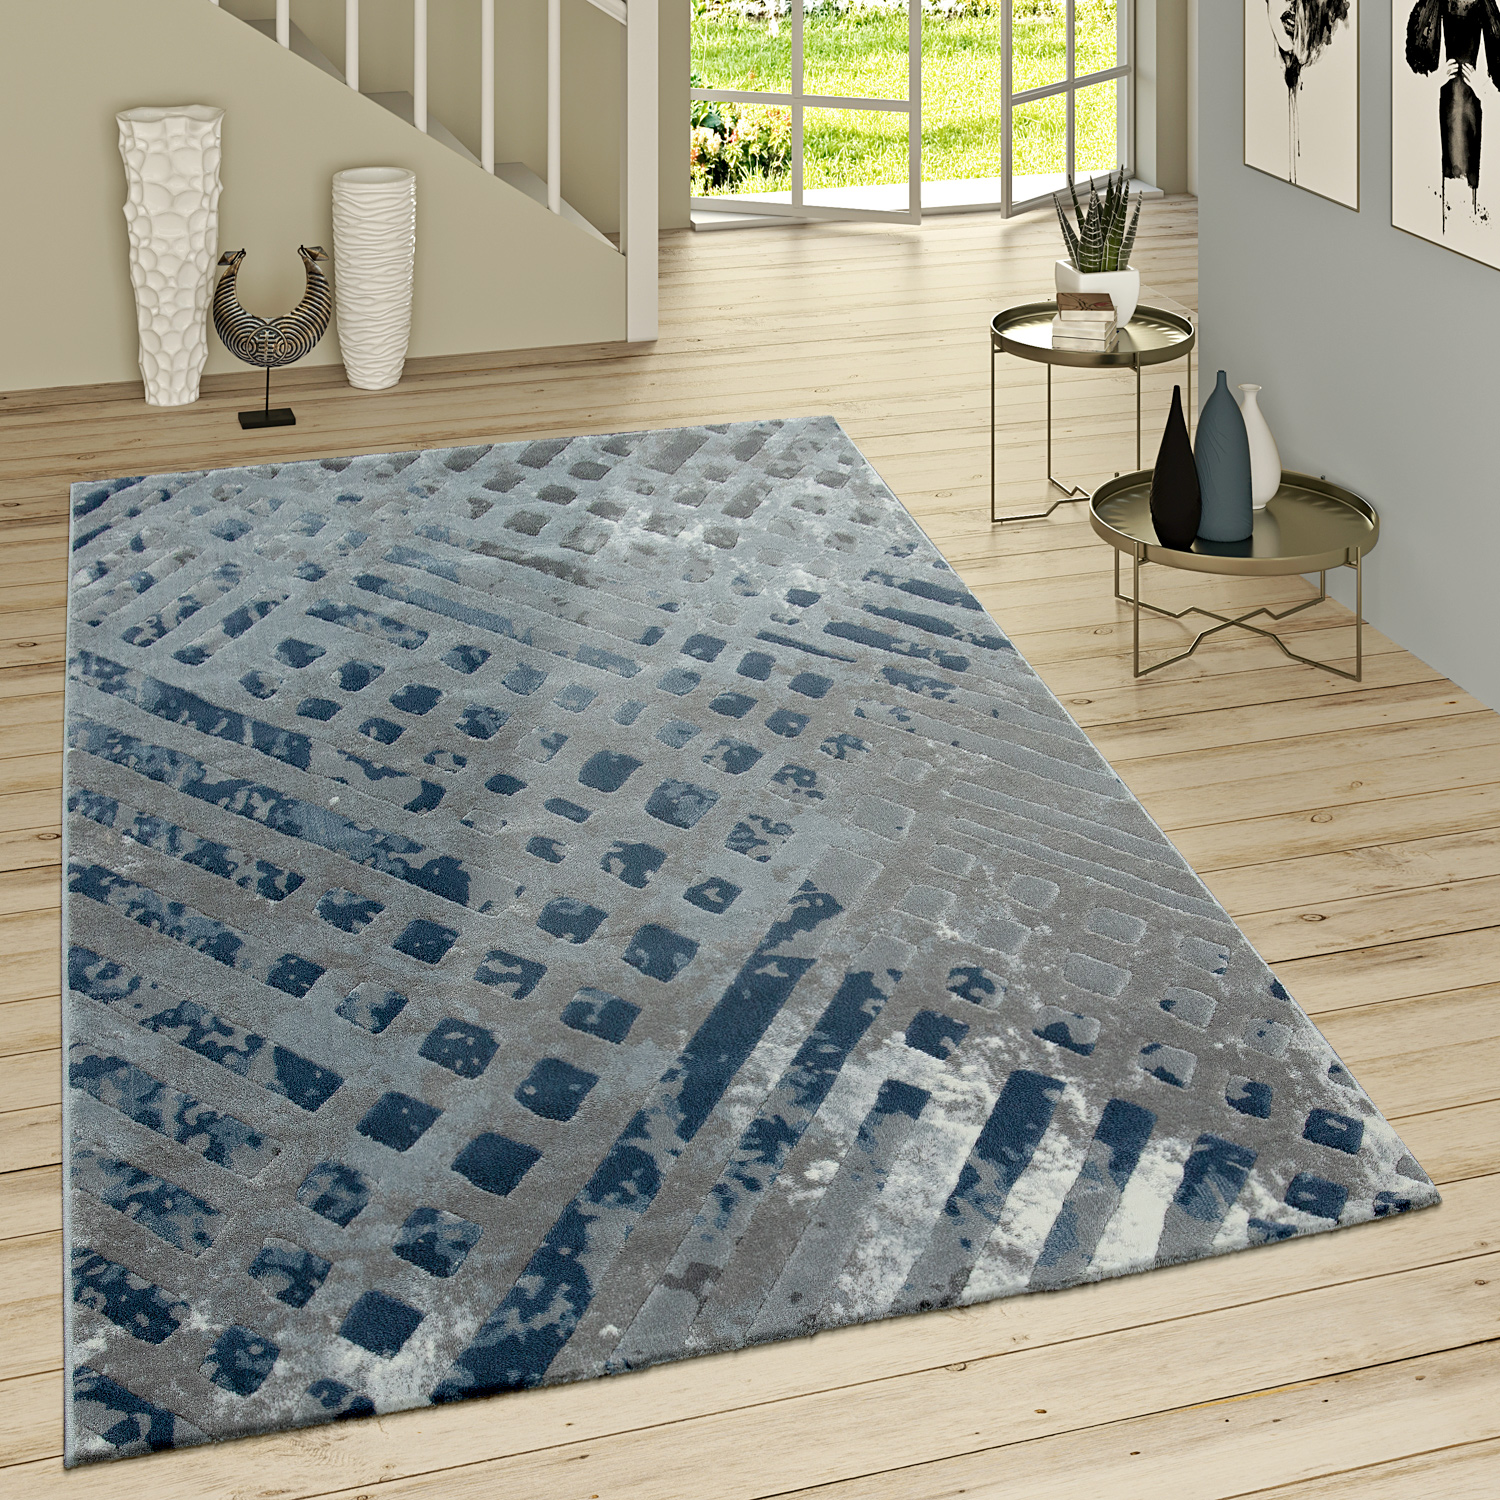 tapis poils ras moderne motif original gris bleu tapis tapis poil ras. Black Bedroom Furniture Sets. Home Design Ideas